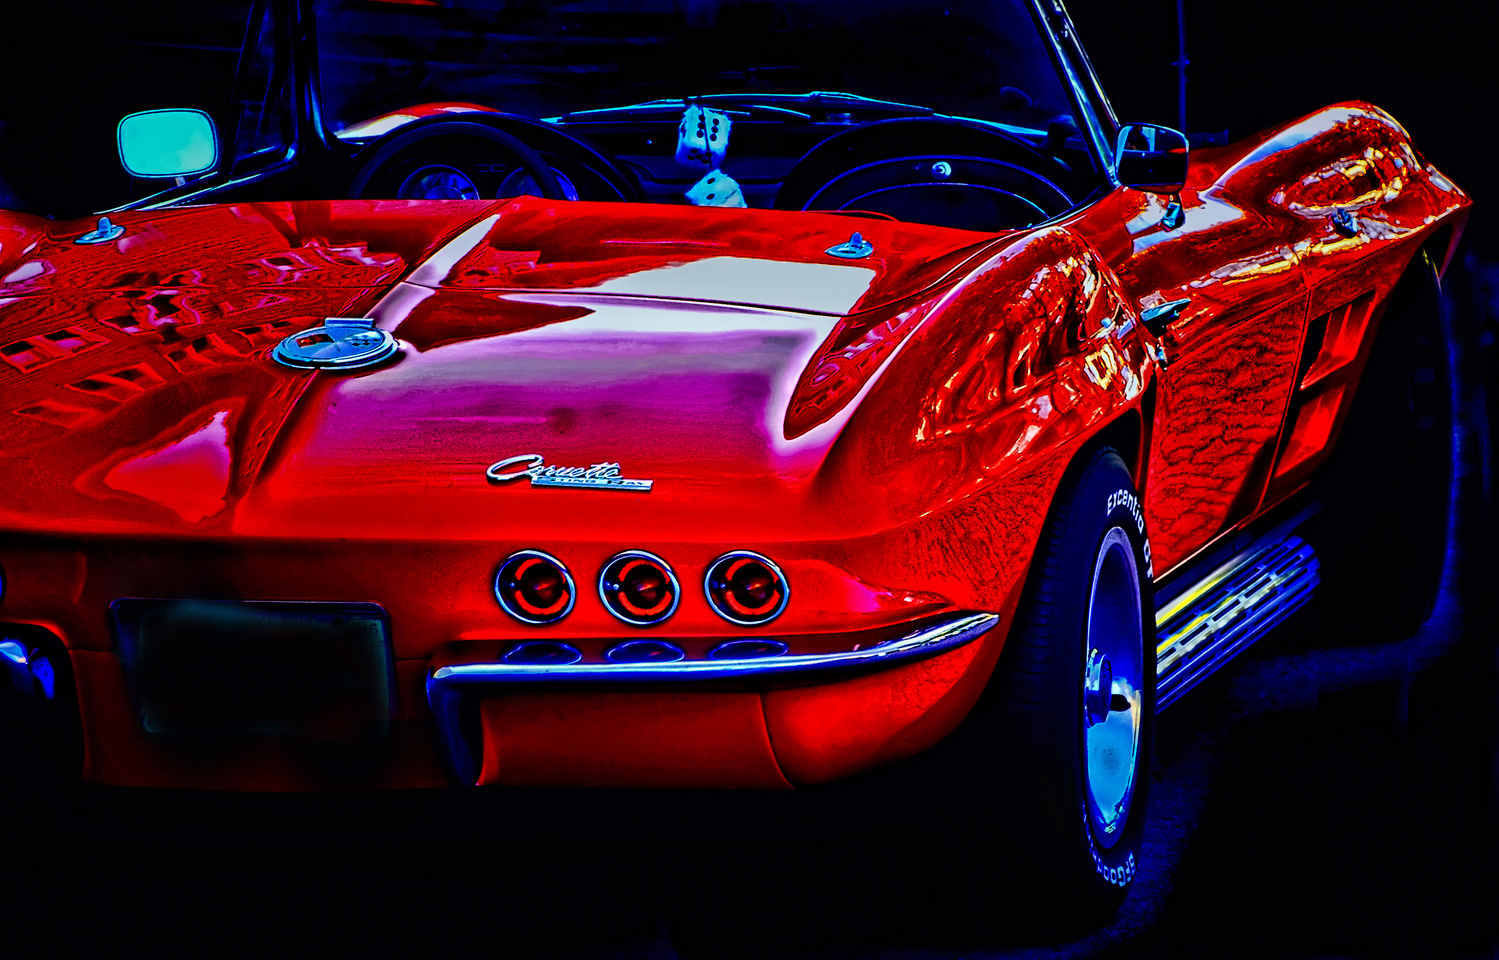 Reflections on a 1963 Corvette ragtop by Bill Jonscher